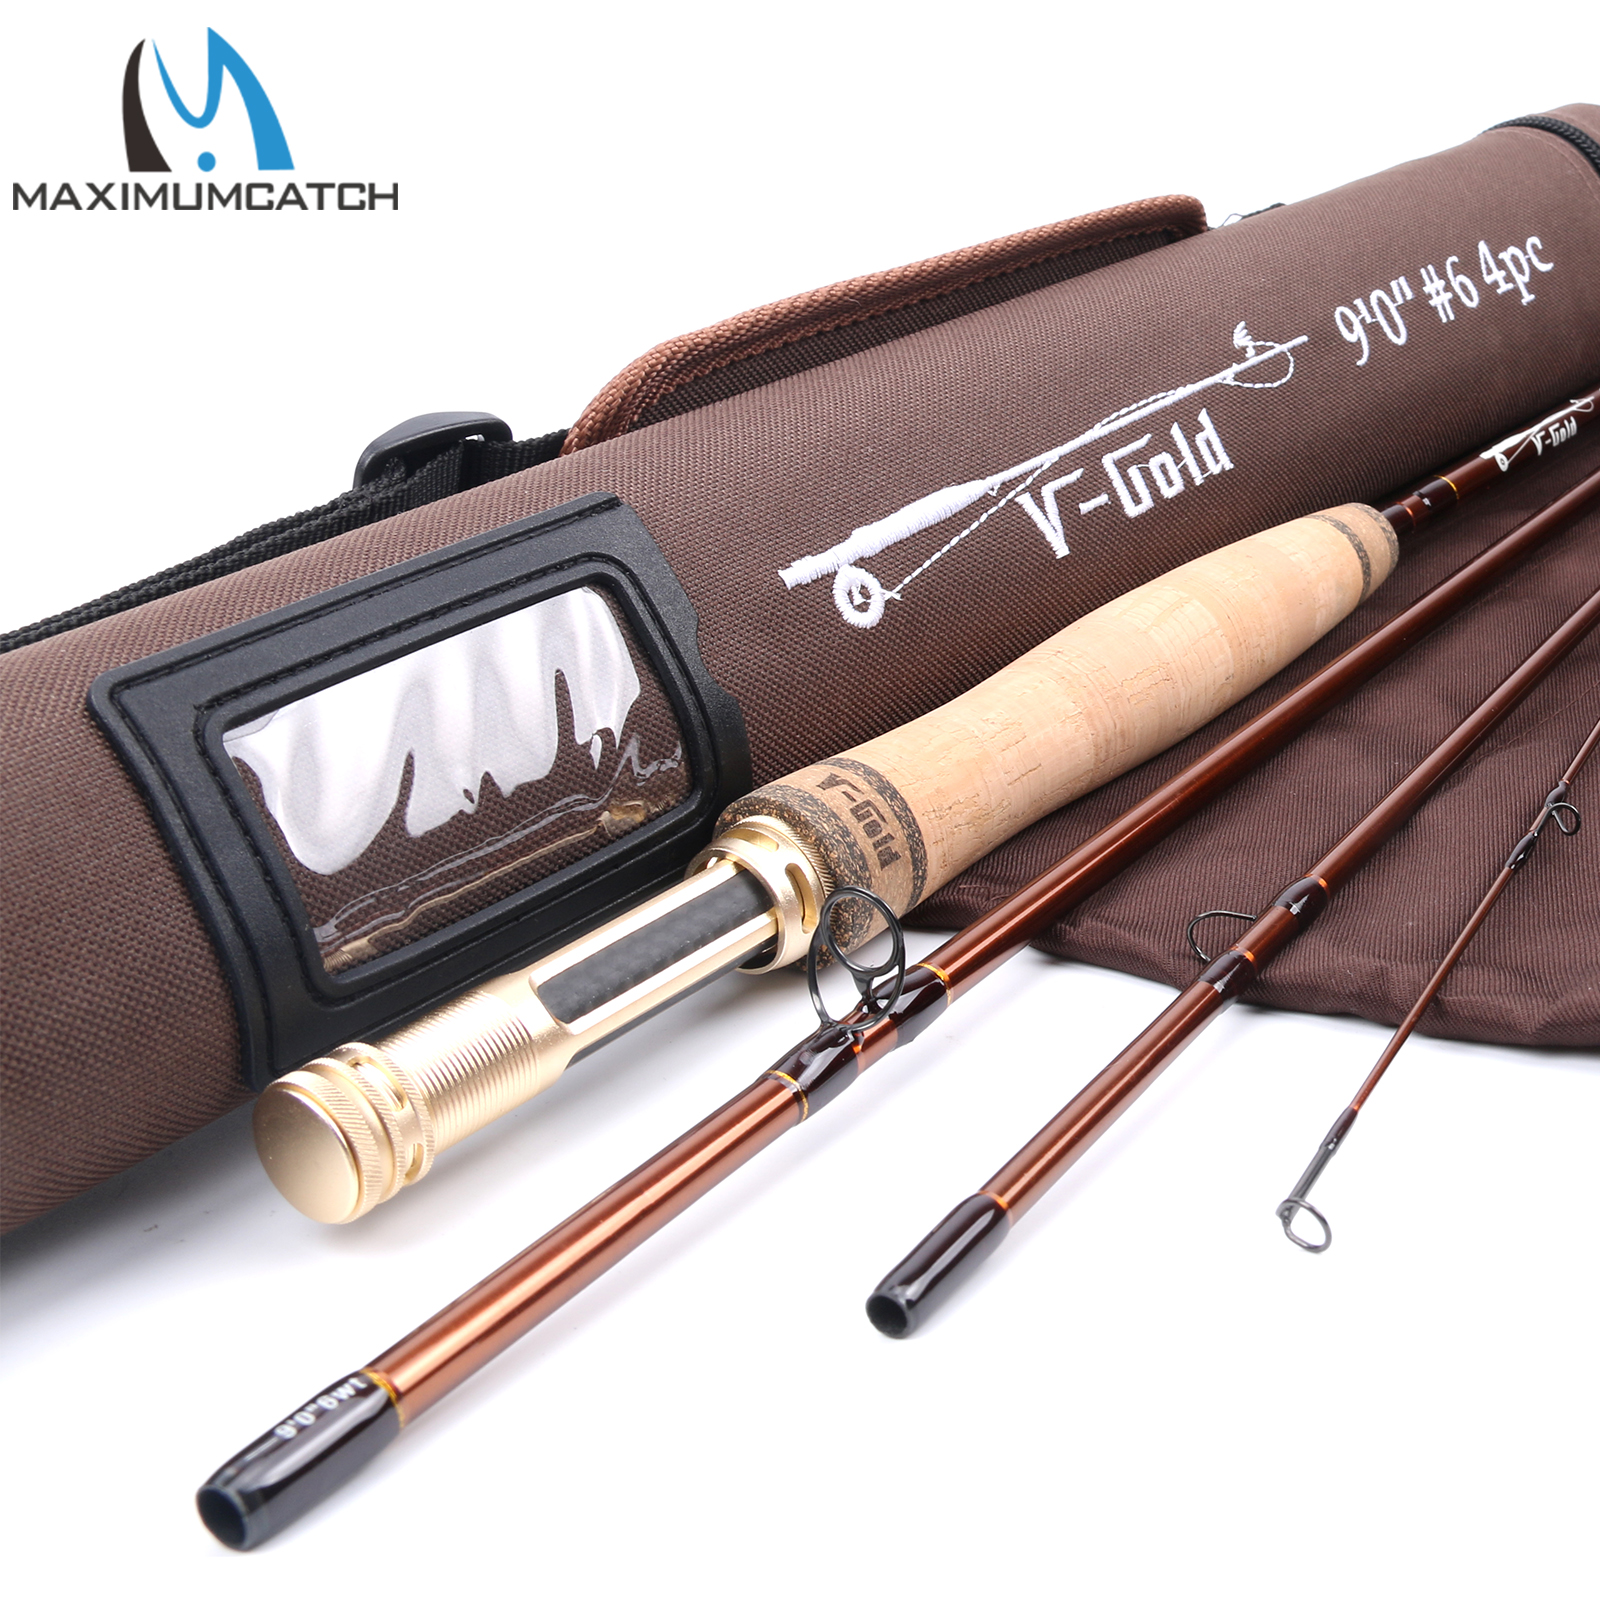 Maximumcatch V Gold Fly Rod 40T SK Carbon Fast Action With Cordura Rod Tube Fly Fishing